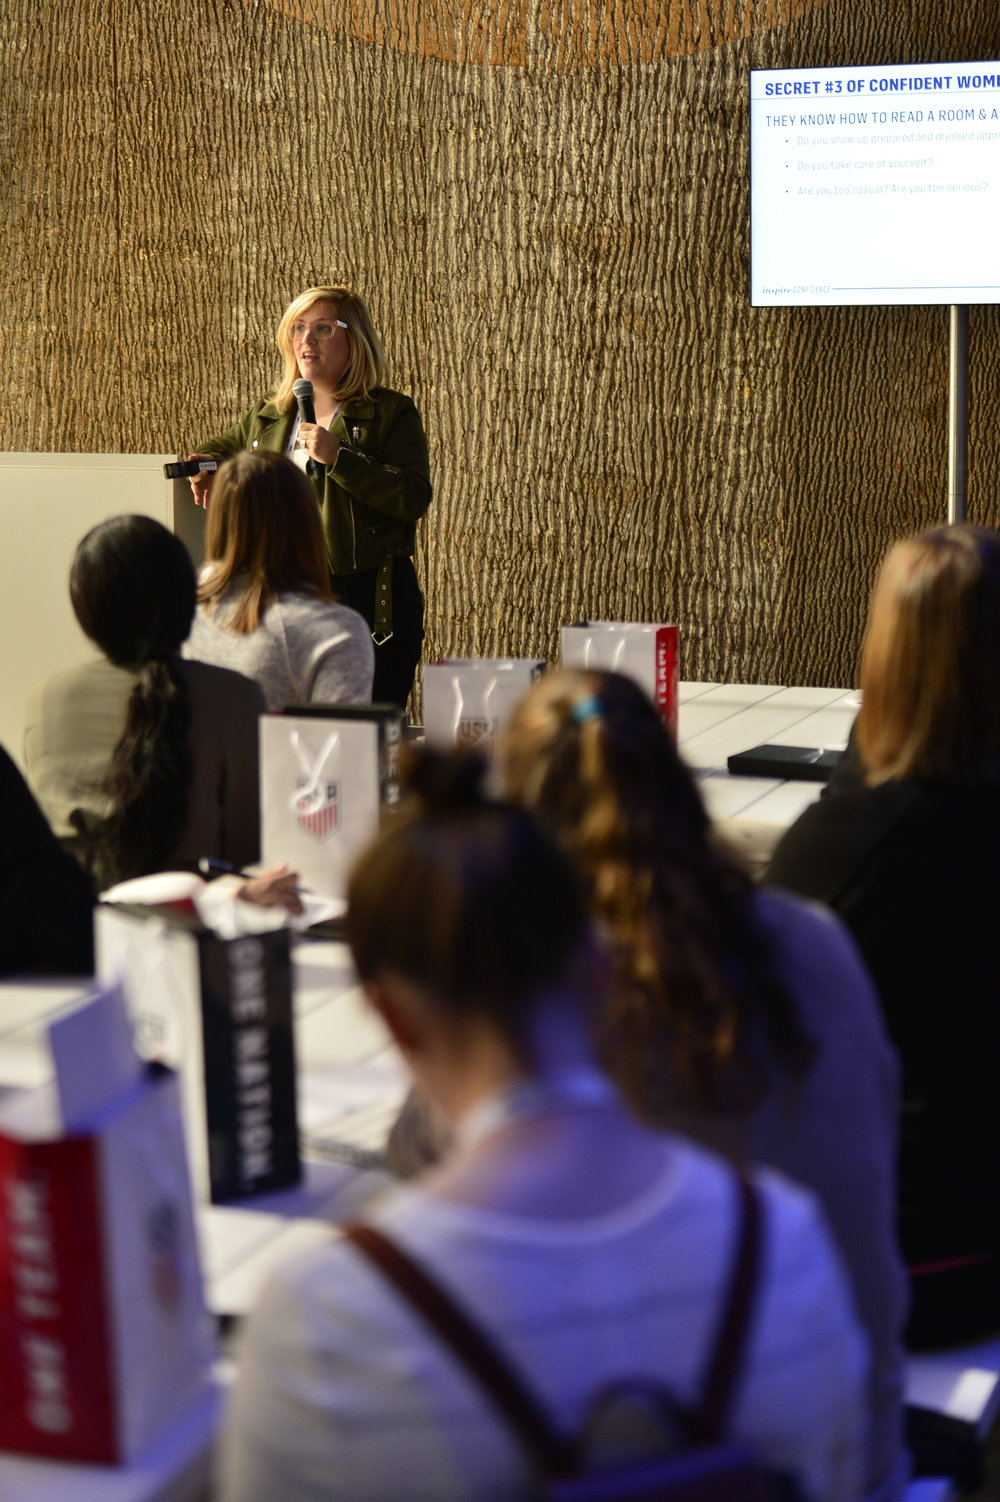 Lea Goldman, Editor in Chief at LifeTime Television, speaks about self-esteem, confidence and motivation during the SheBelieves in You breakout session.